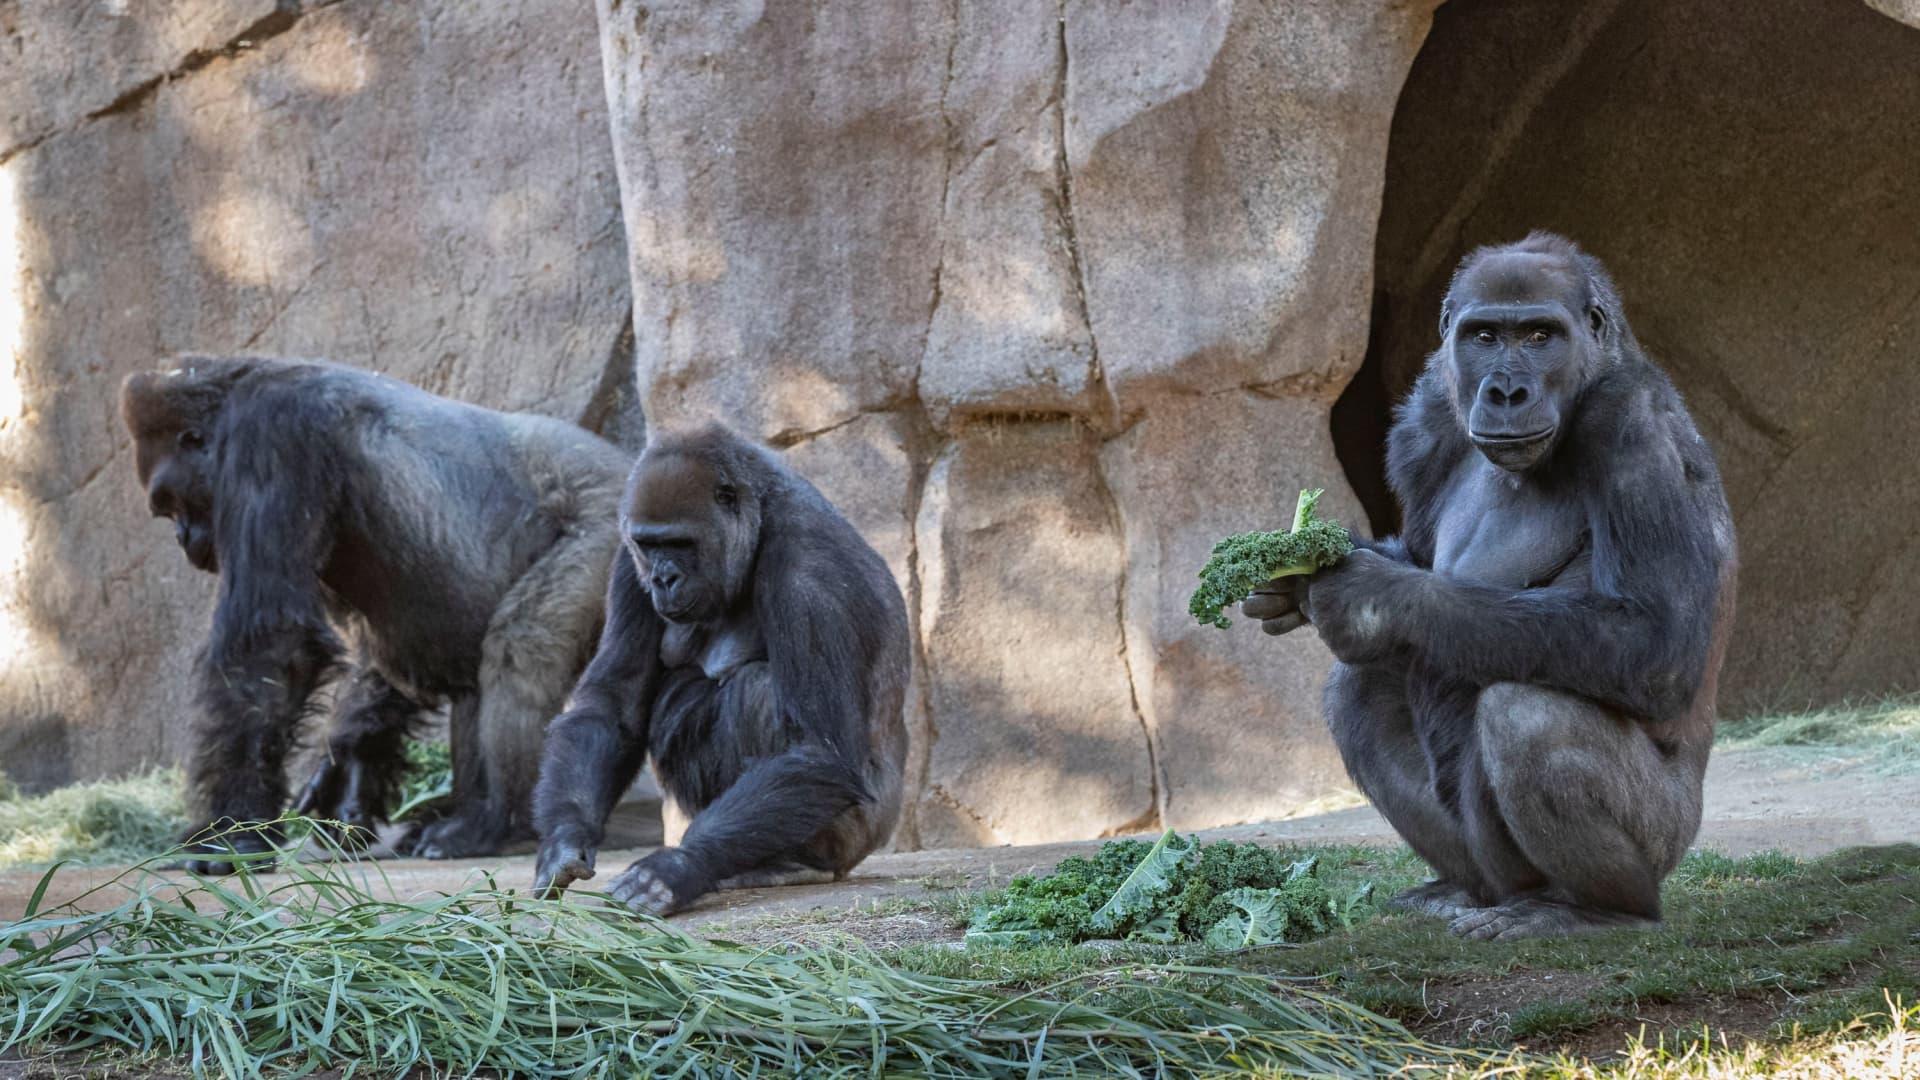 Gorillas sit after two of their troop tested positive for COVID-19 after falling ill, and a third gorilla appears also to be symptomatic, at the San Diego Zoo Safari Park in San Diego, California, U.S. January 10, 2021.